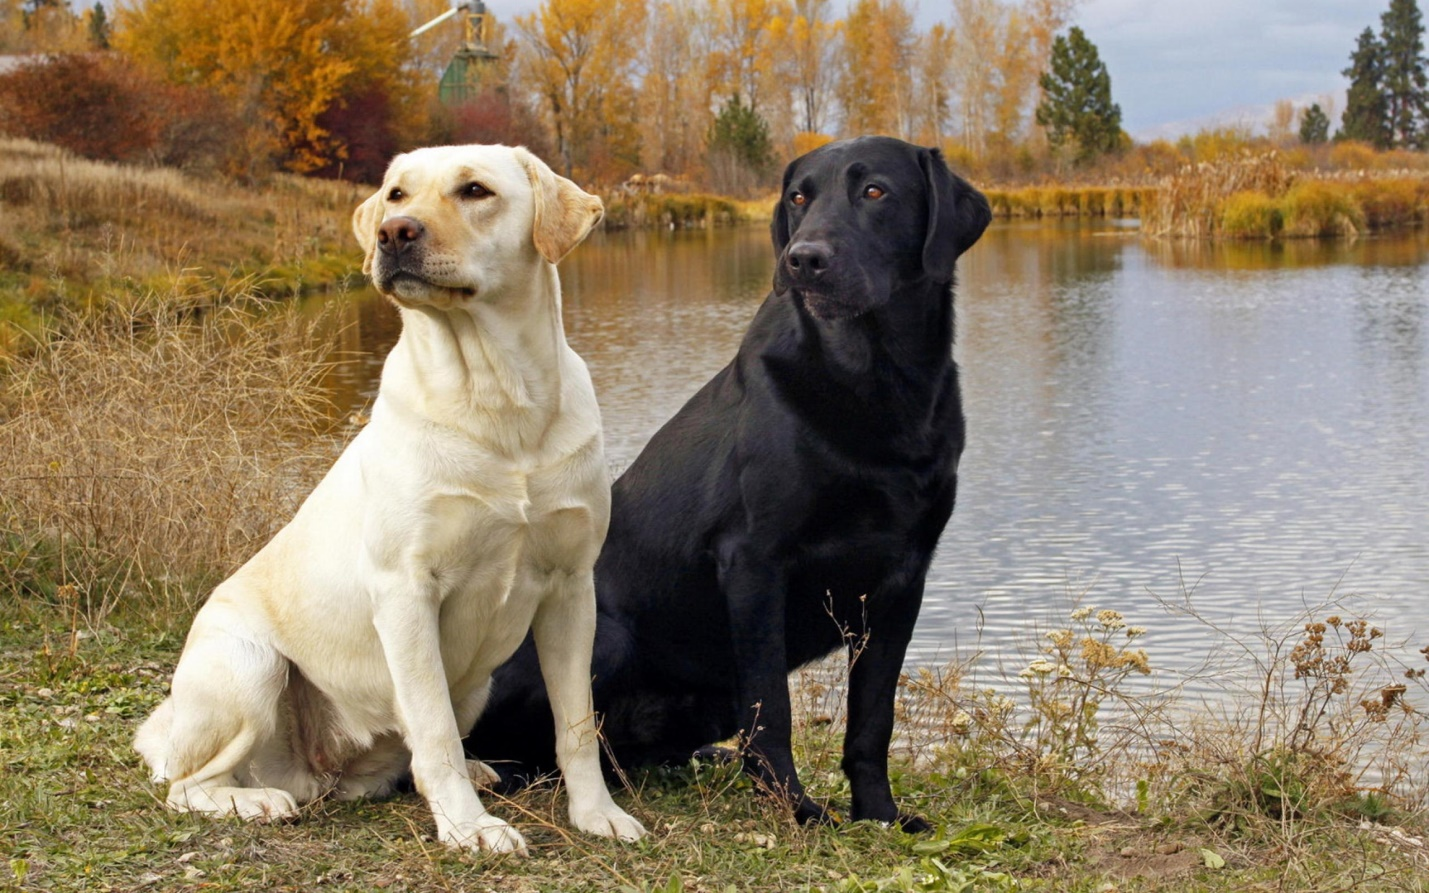 https://on-desktop.com/ru/images/wp.php?path=/wps/Animals_Dogs_Pair_of_Labrador_Retrievers_025414_.jpg&wp=17